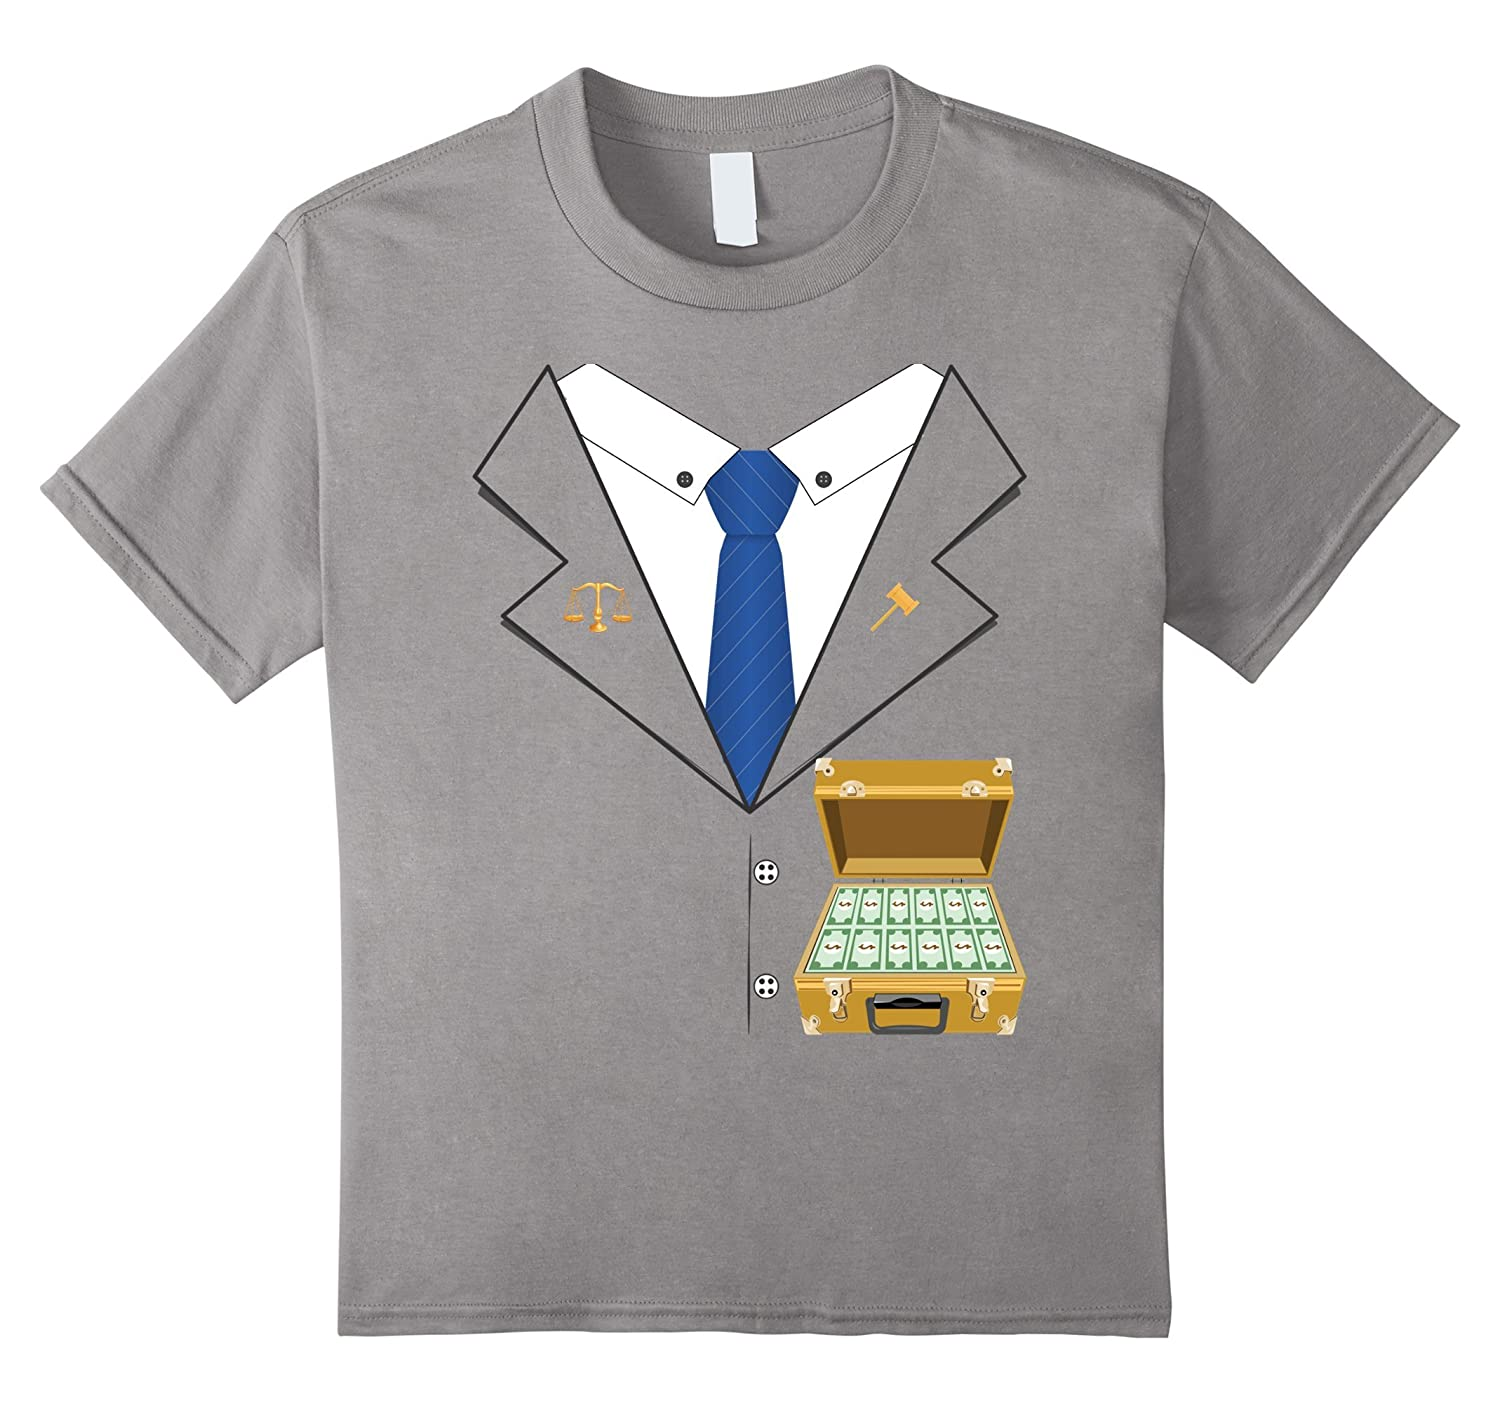 Funny Lawyer Halloween Costume T-shirt - Money Briefcase